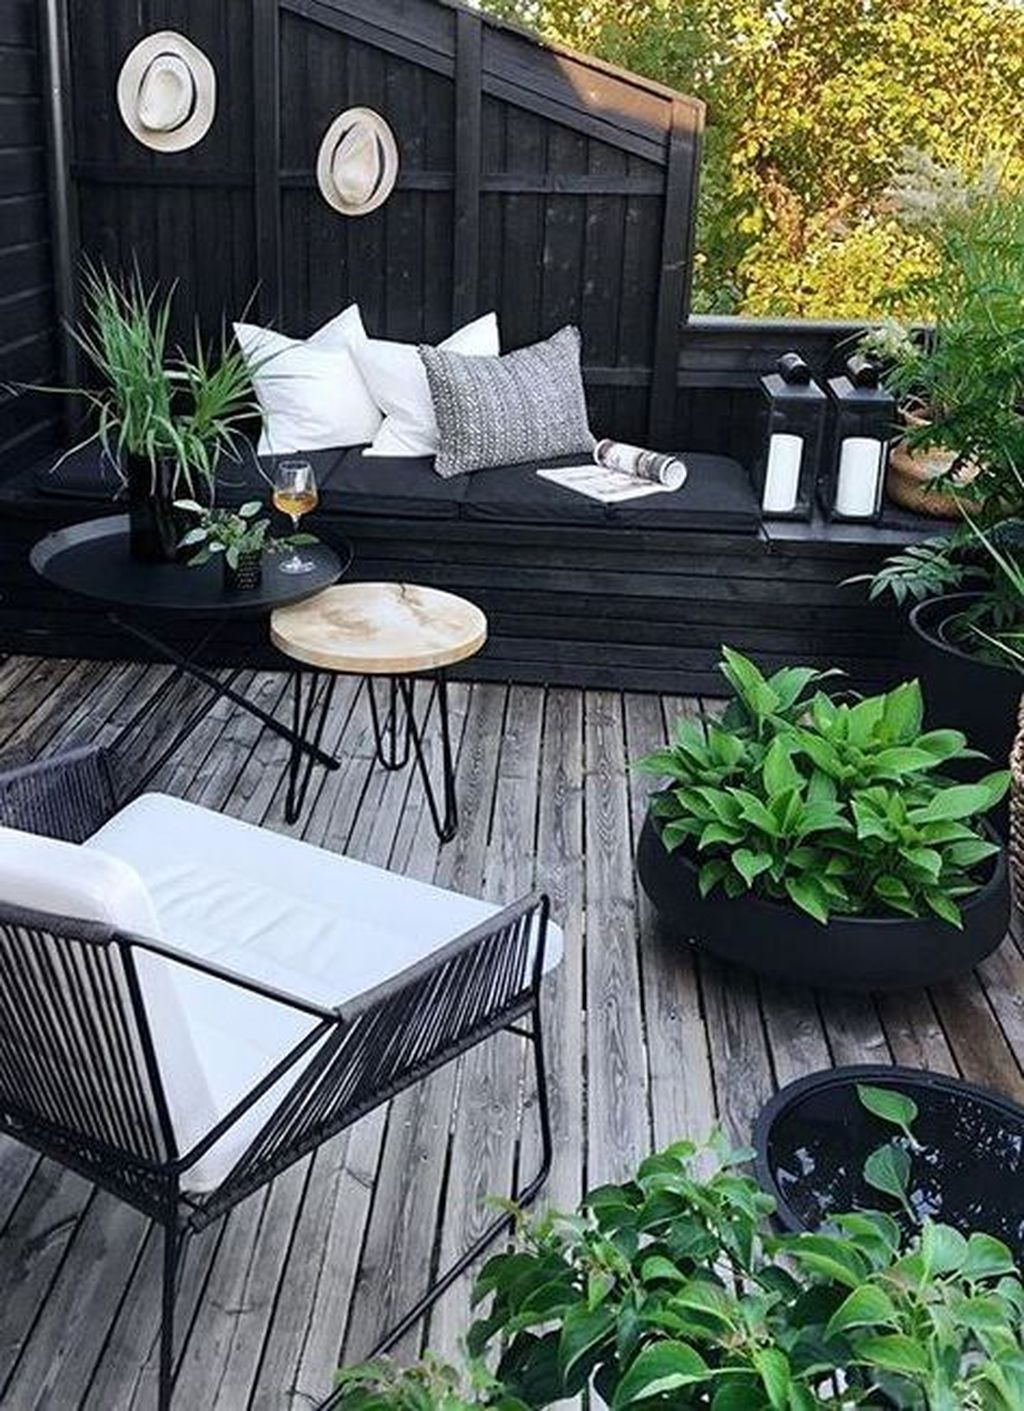 Unordinary Outdoor Living Room Design Ideas To Have Asap 33